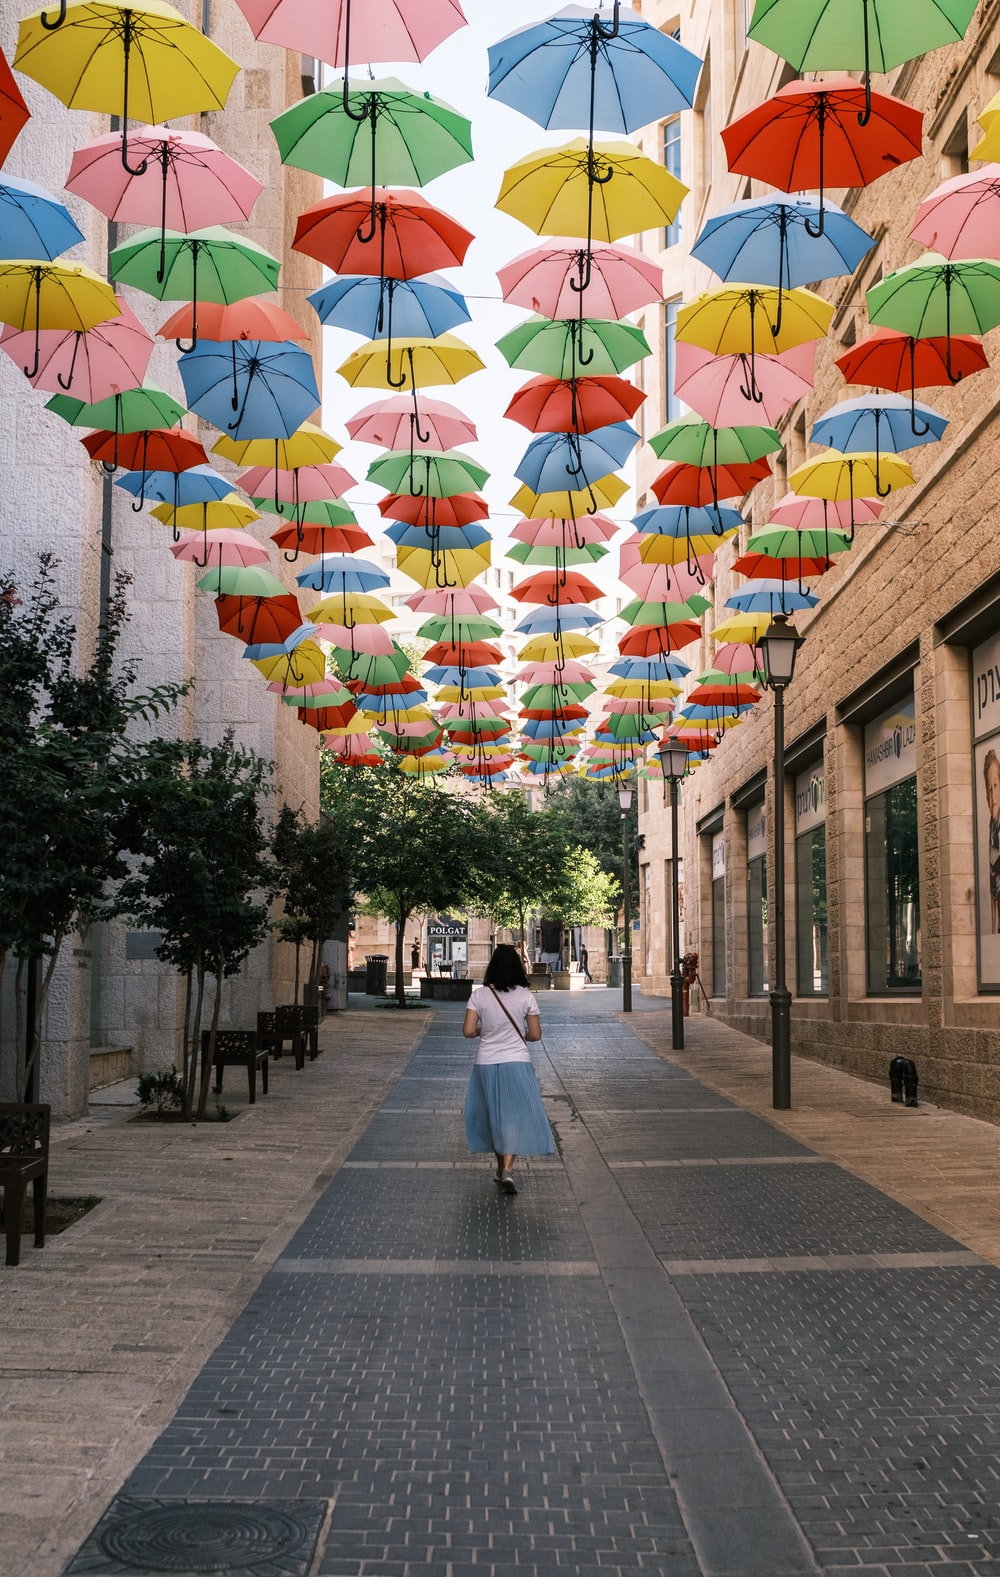 people walking on sidewalk with multi colored umbrellas on the street during daytime